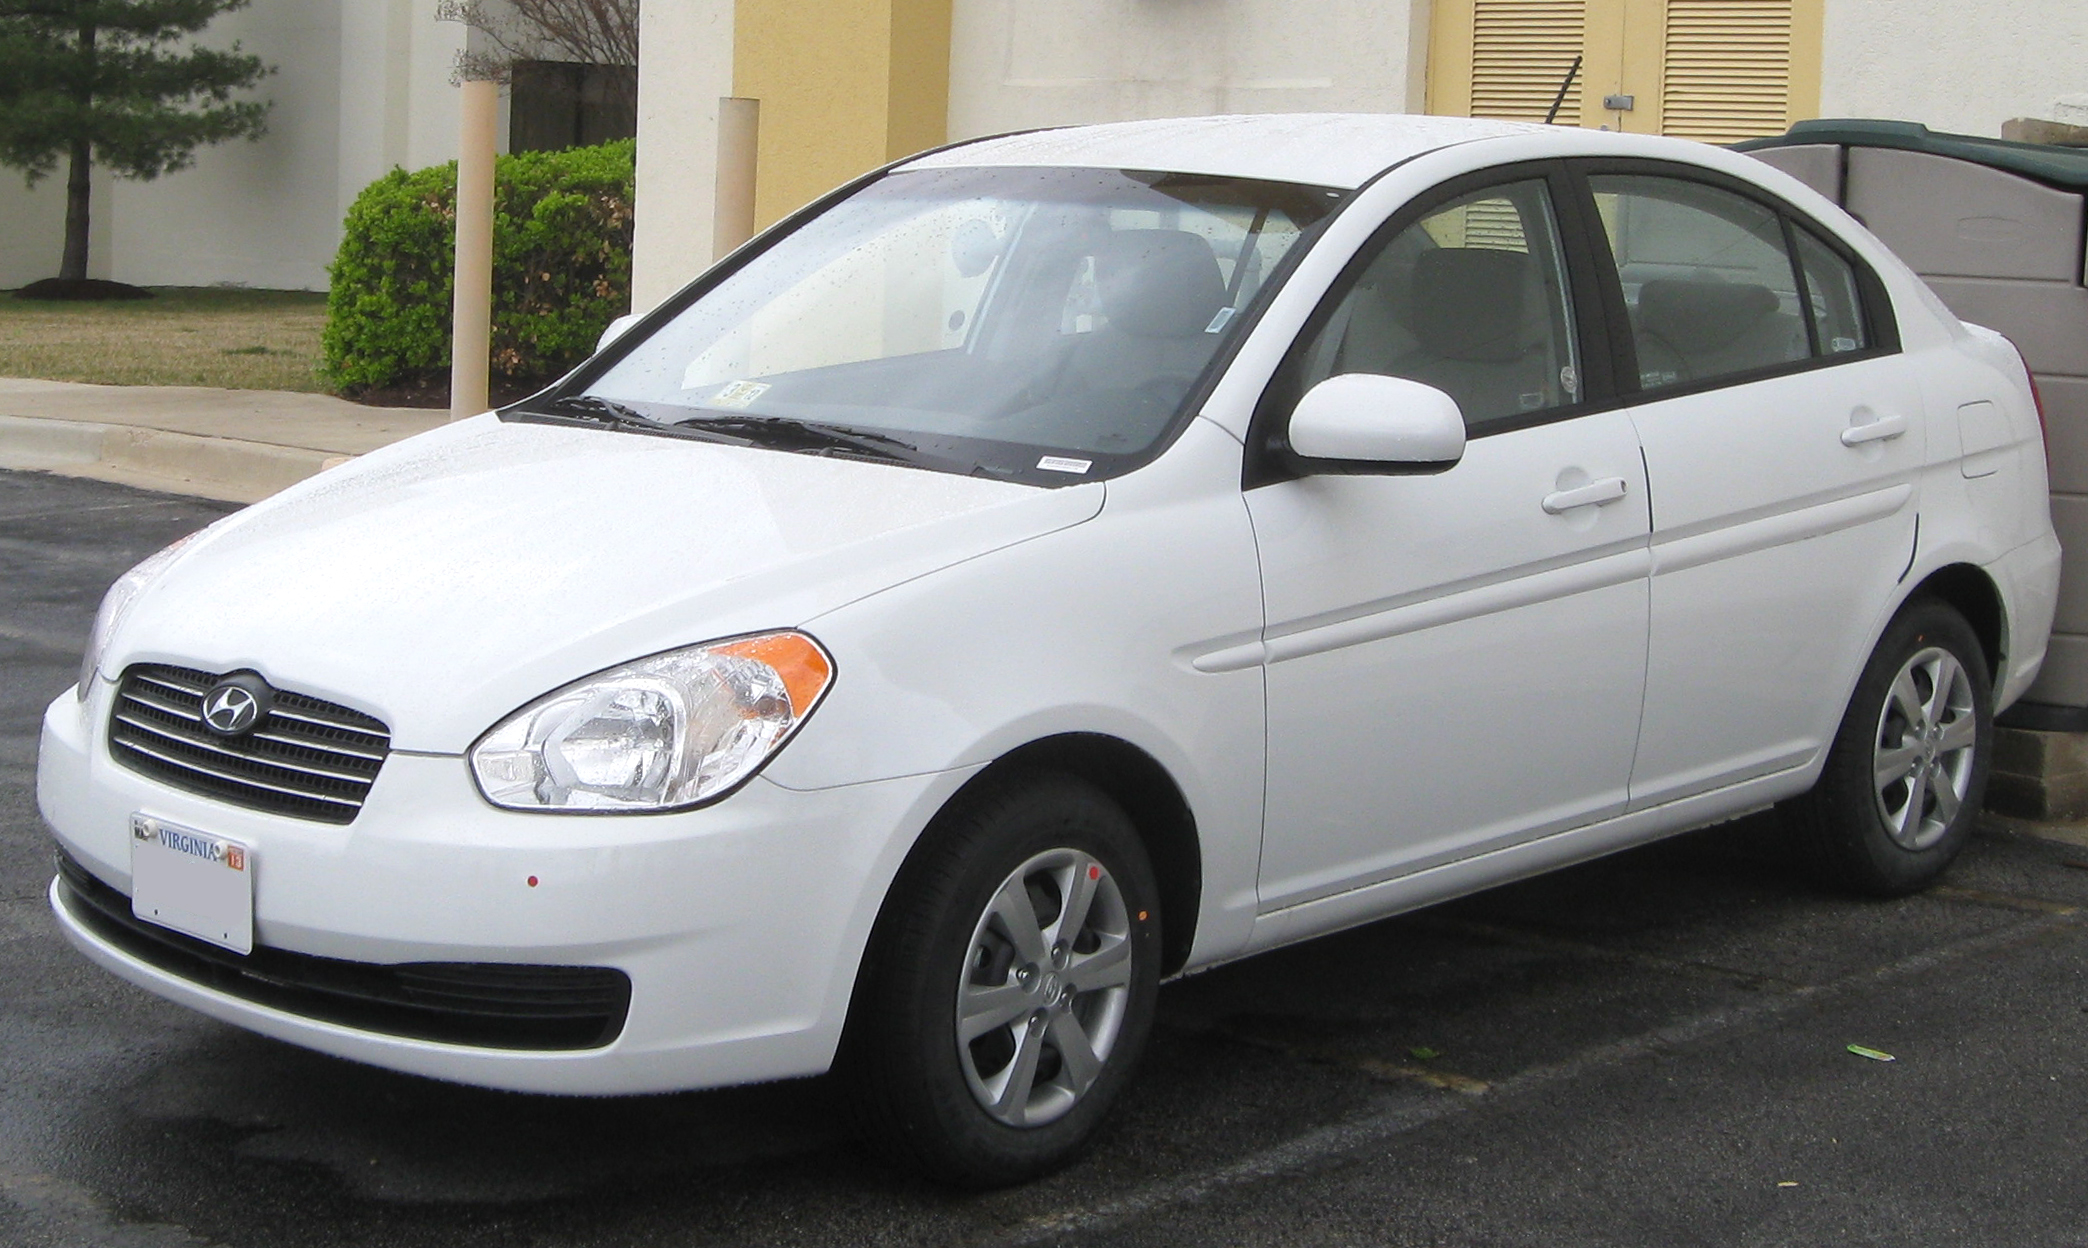 File Hyundai Accent Sedan 03 24 2011 Jpg Wikimedia Commons